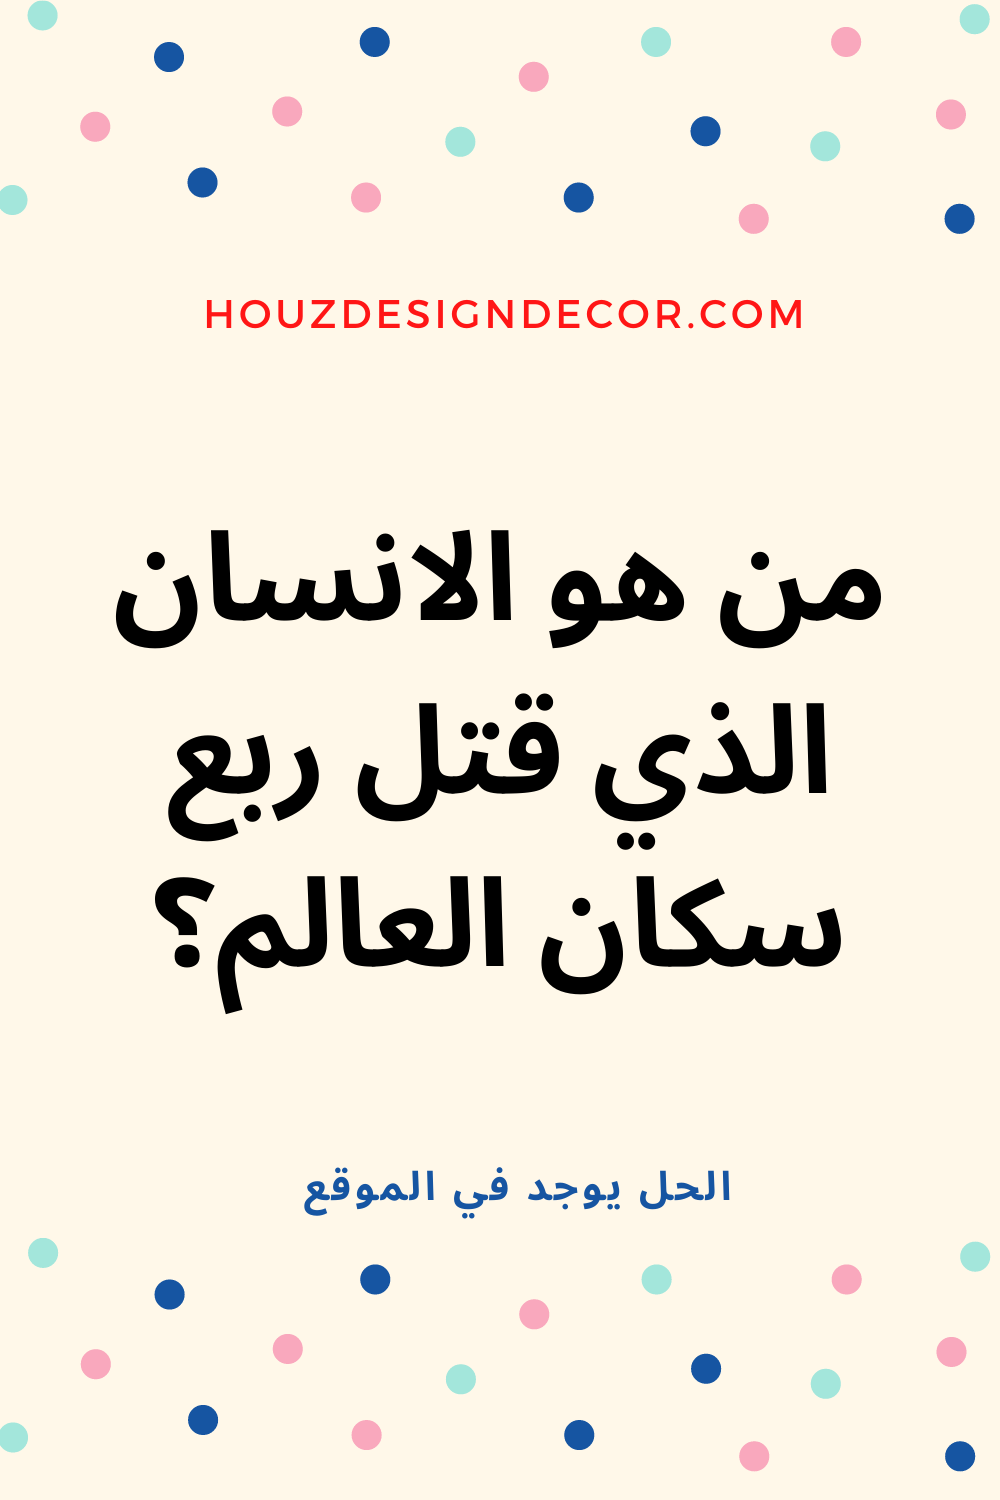 Hard Riddles In Arabic Hard Riddles Funny Riddles Arabic Love Quotes